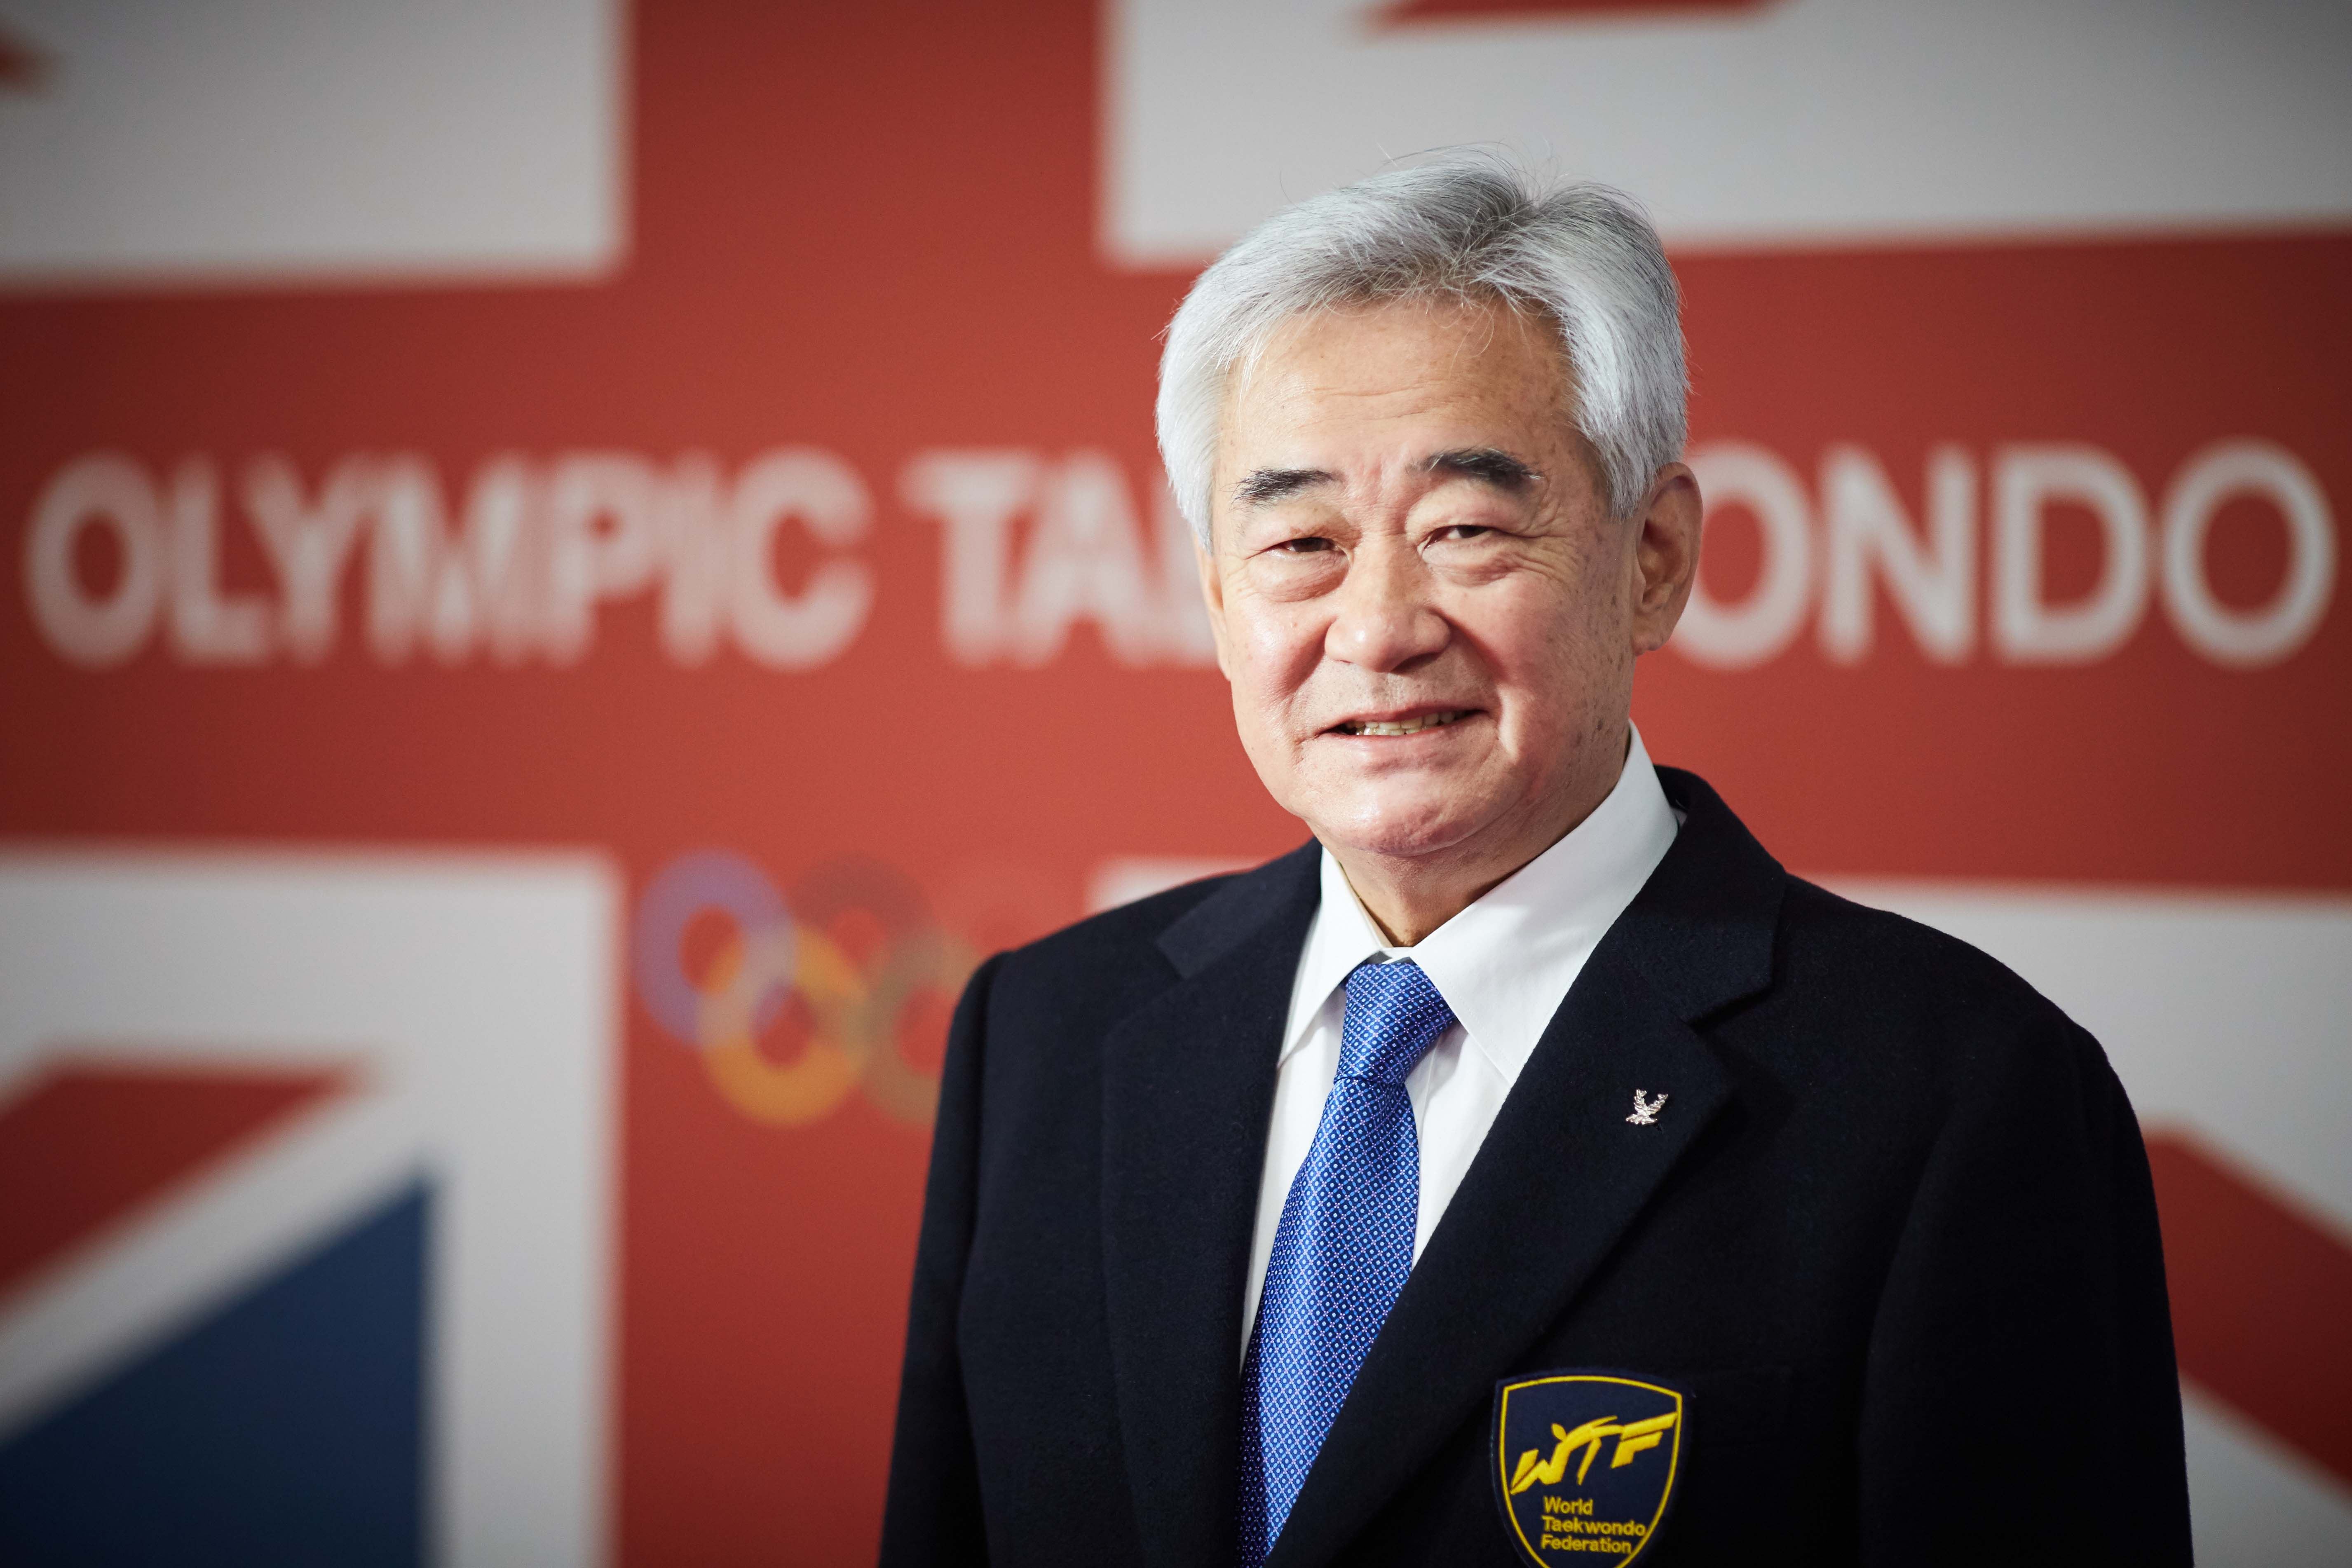 National Taekwondo Centre in Manchester official opening of the new Centre after a £3m transformation. Pictured Chungwon Choue, President of the World Taekwondo Federation